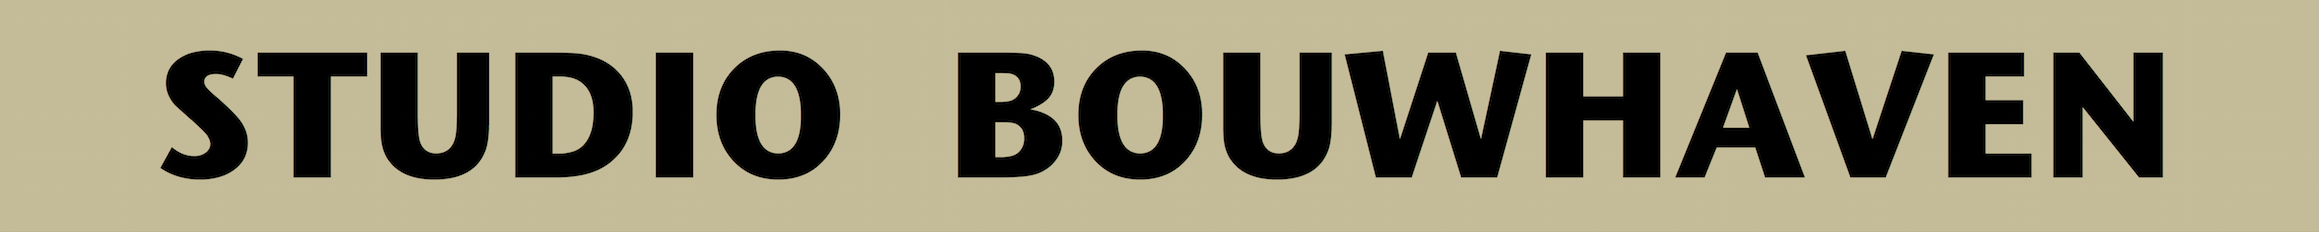 Studio Bouwhaven total engineering logo